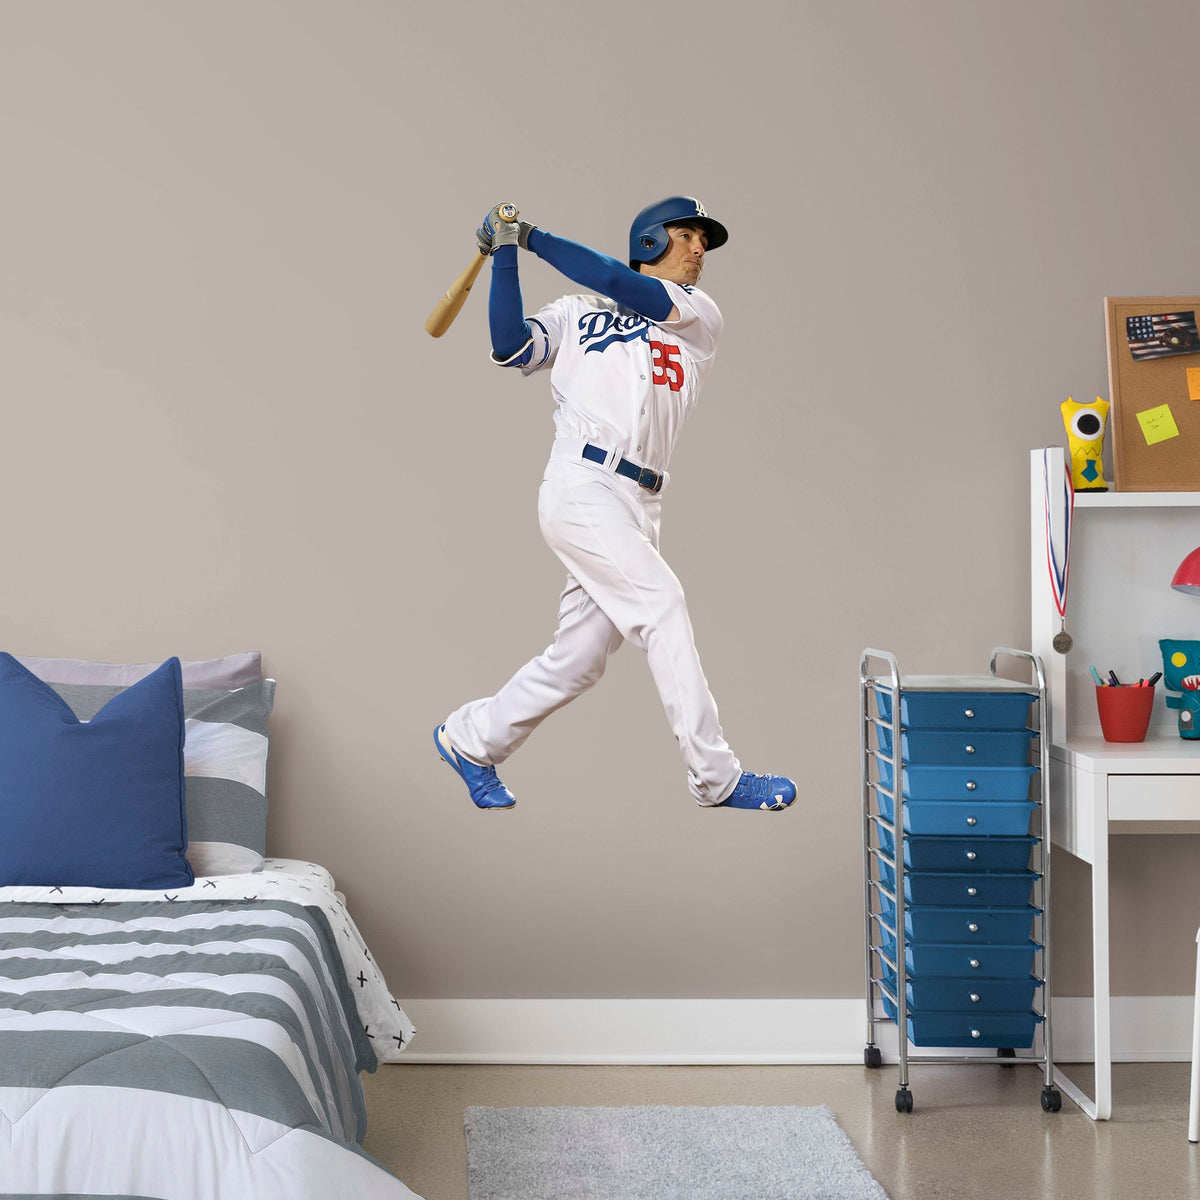 Cody Bellinger Officially Licensed Mlb Removable Wall